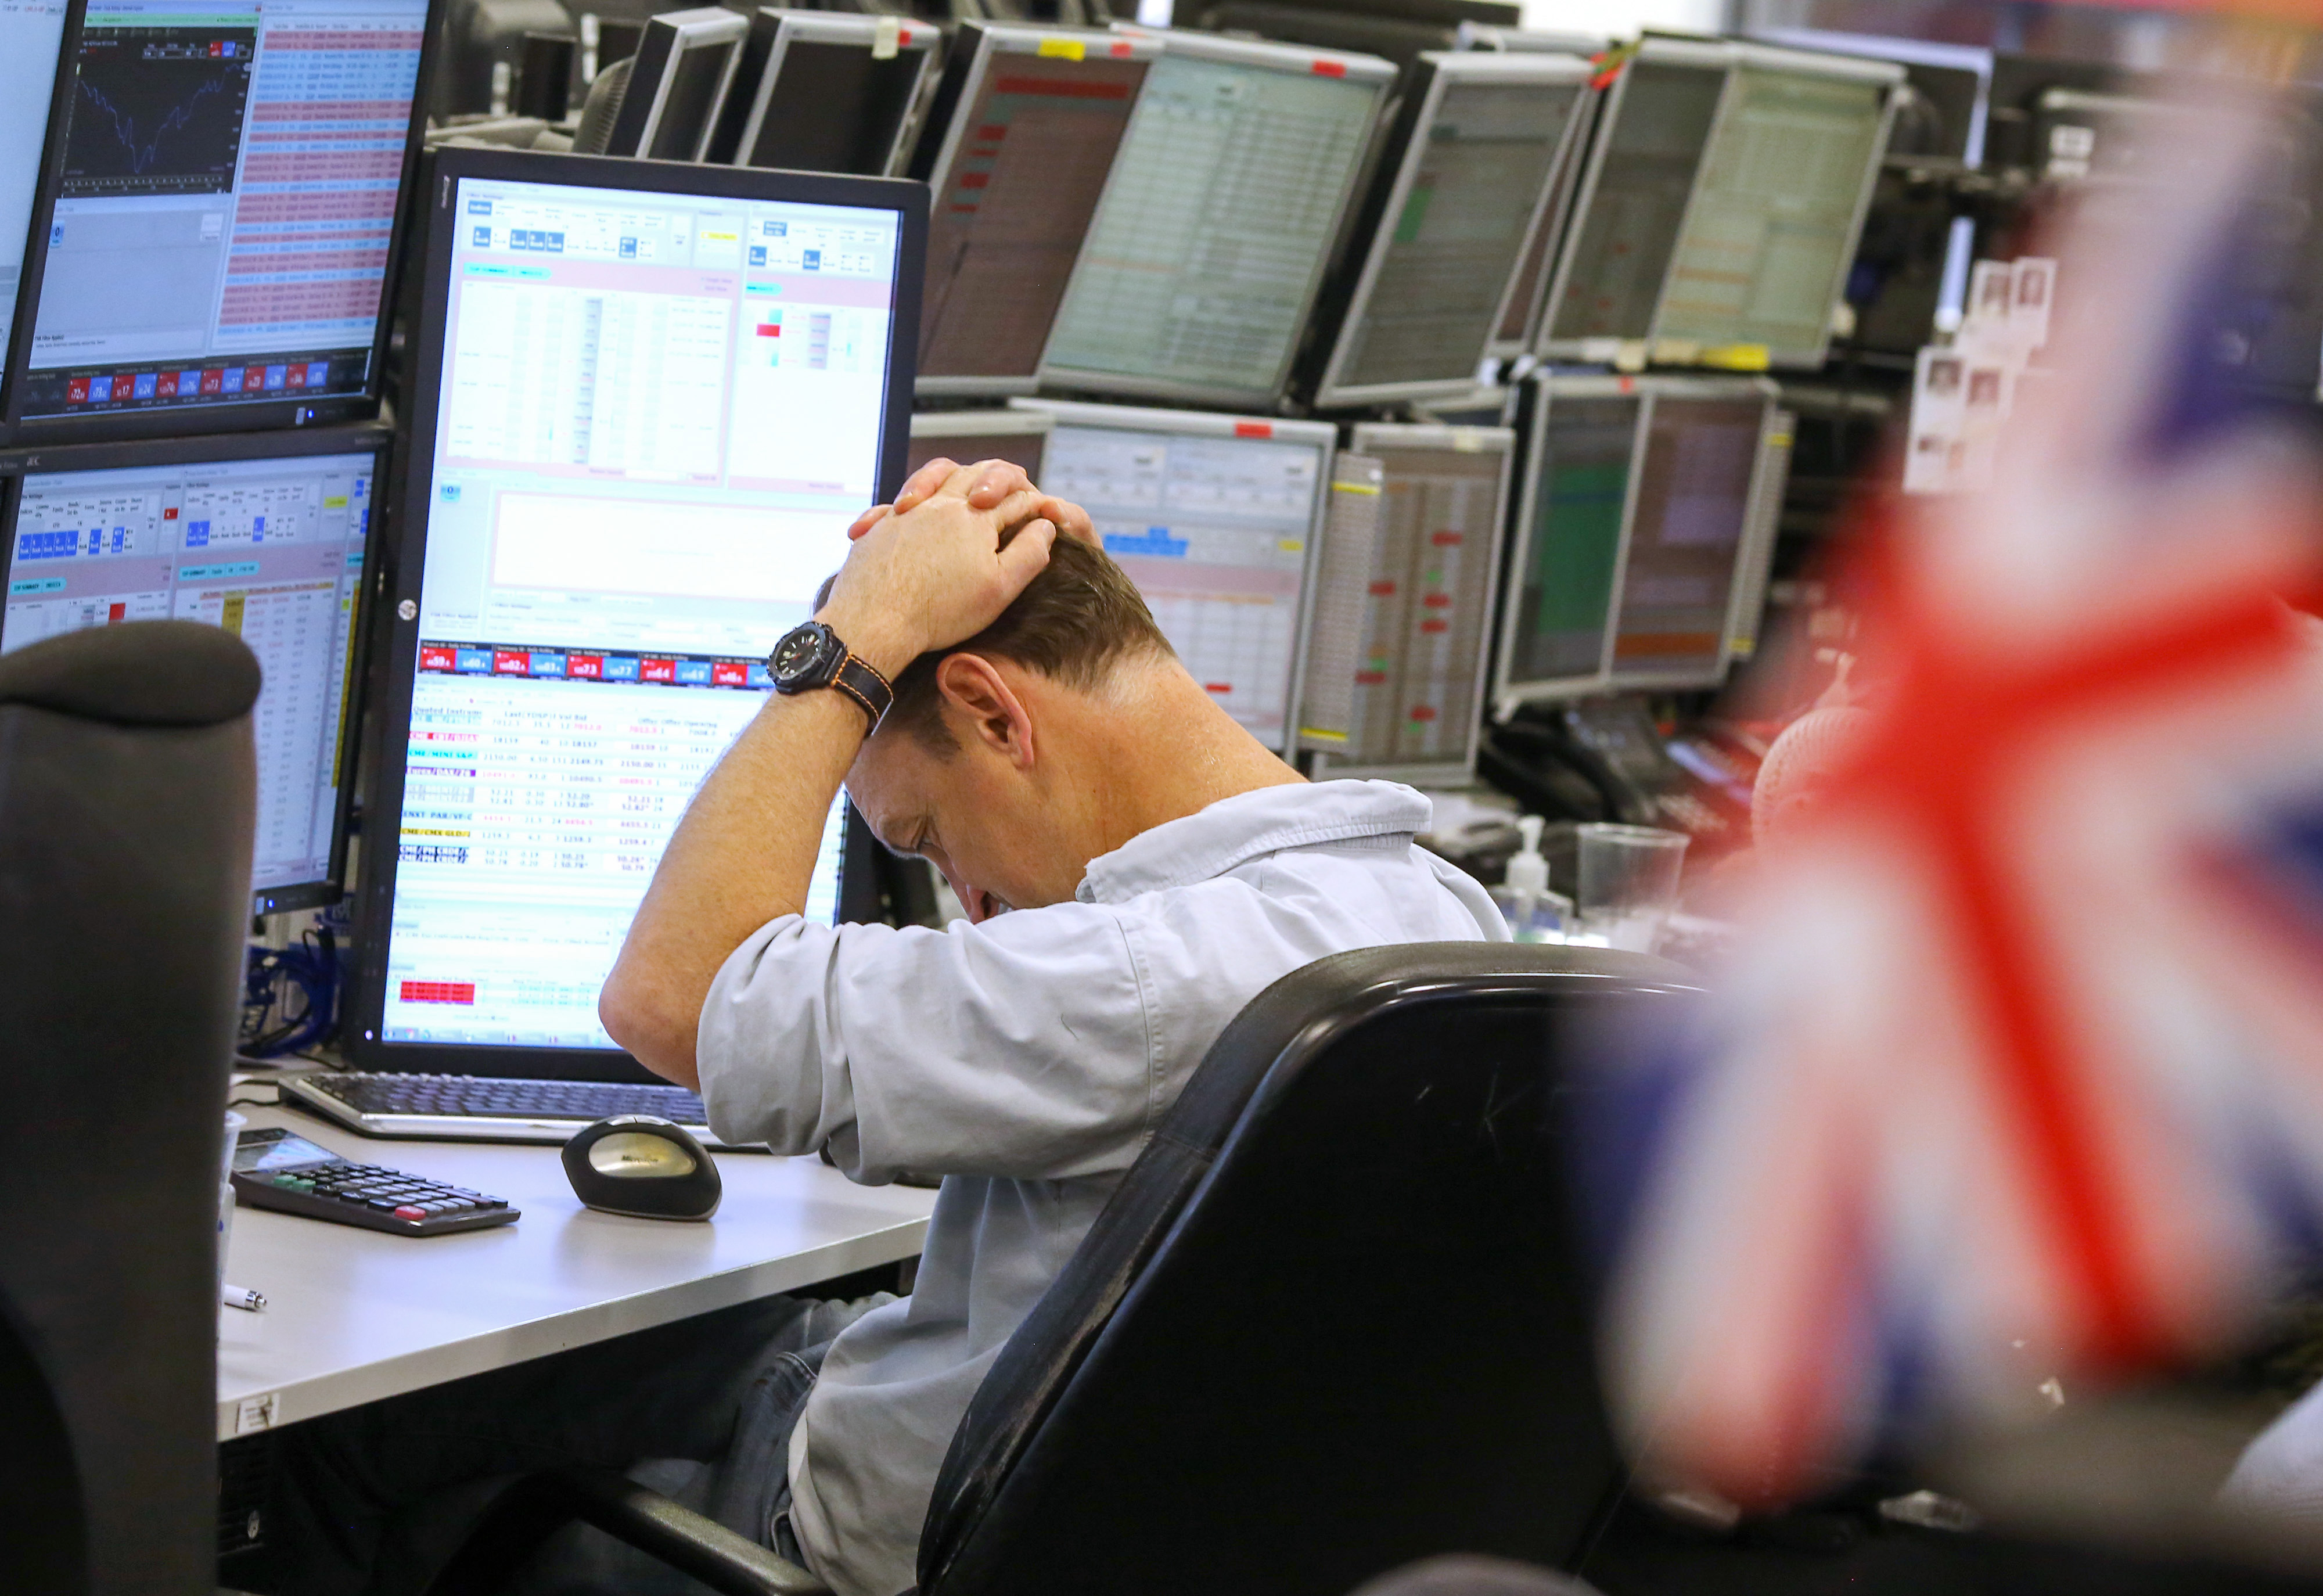 A trader pauses while monitoring financial data on computer screens at ETX Capital, a broker of contracts-for-difference, in London, U.K